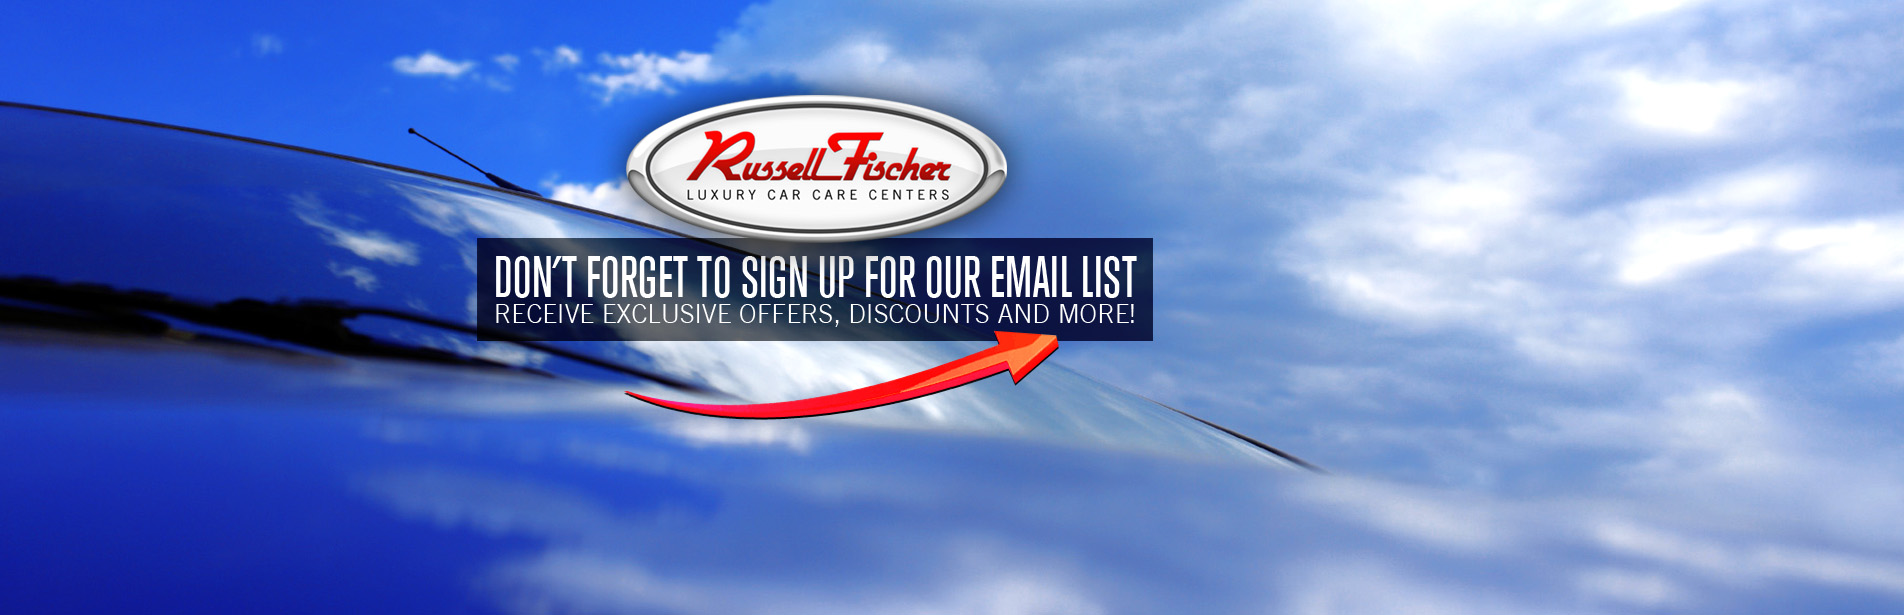 Don't Forget to sign up for our Email list